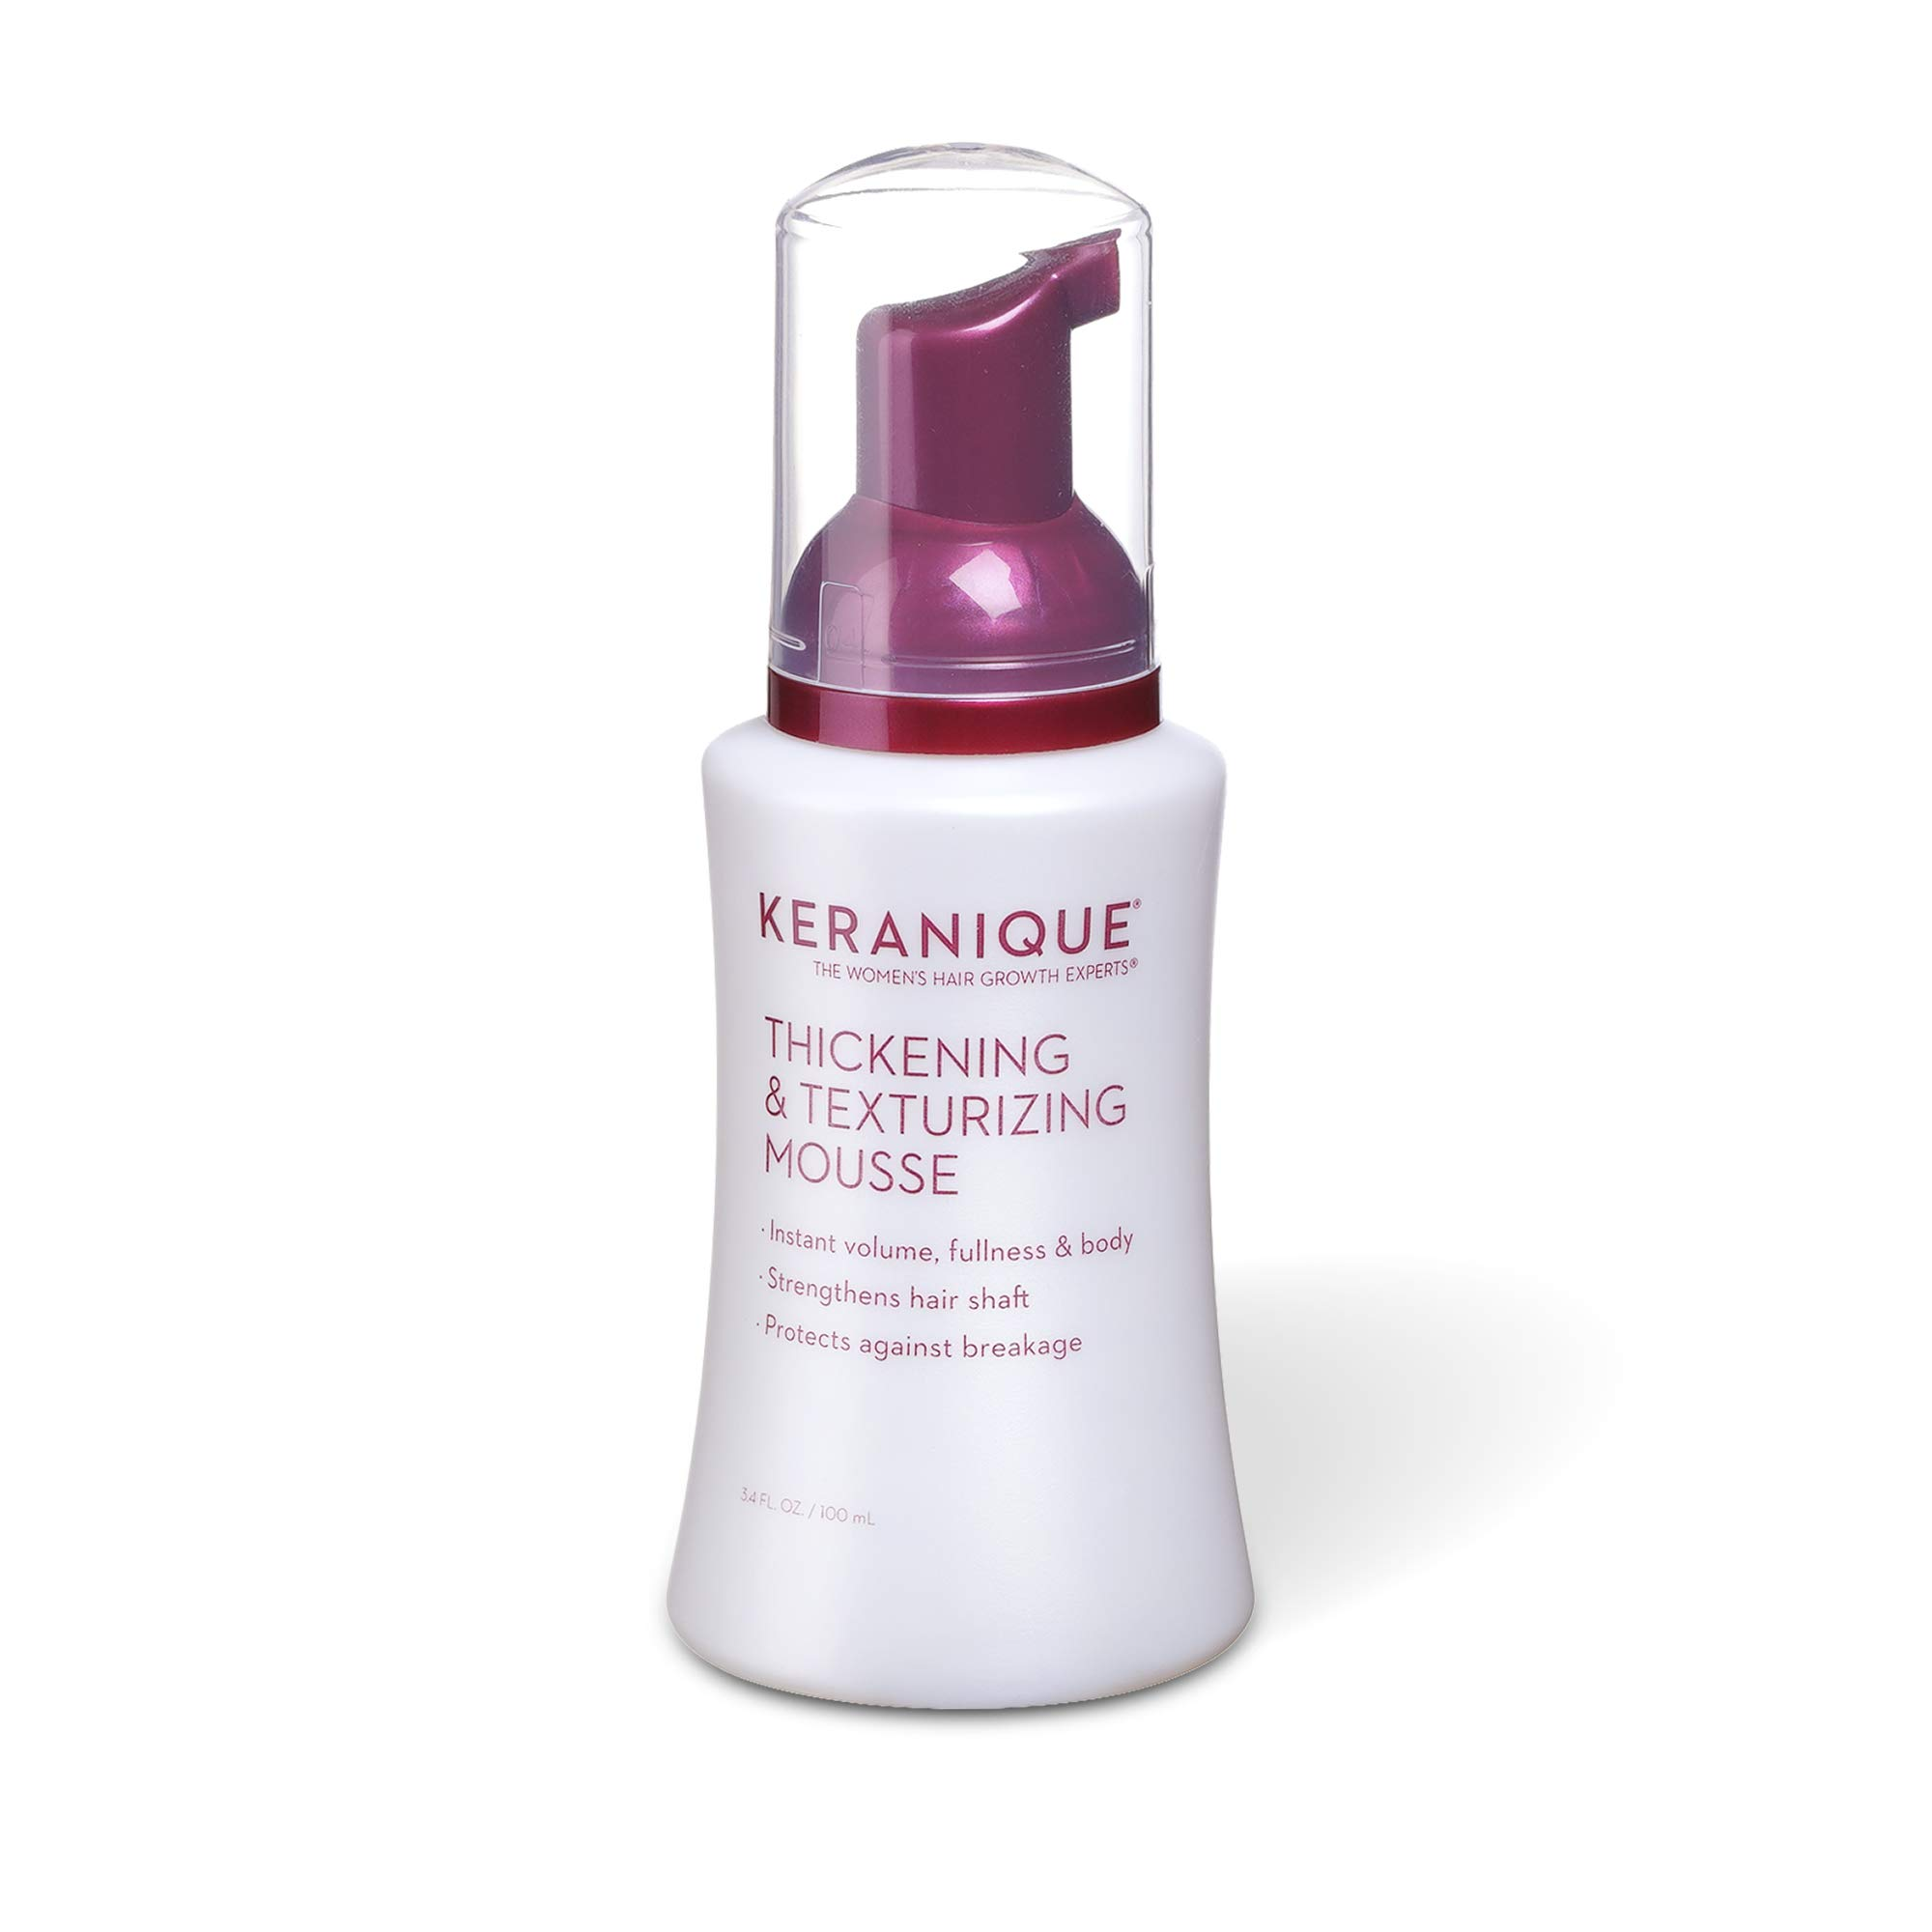 Keranique Thickening & Texturizing Mousse, 3.4 Fl Oz – Instant Volume, Thickness and Body, Leaving Hair with Smooth and Soft Touch   Strengthens Hair Shaft and Protects Against Breakage